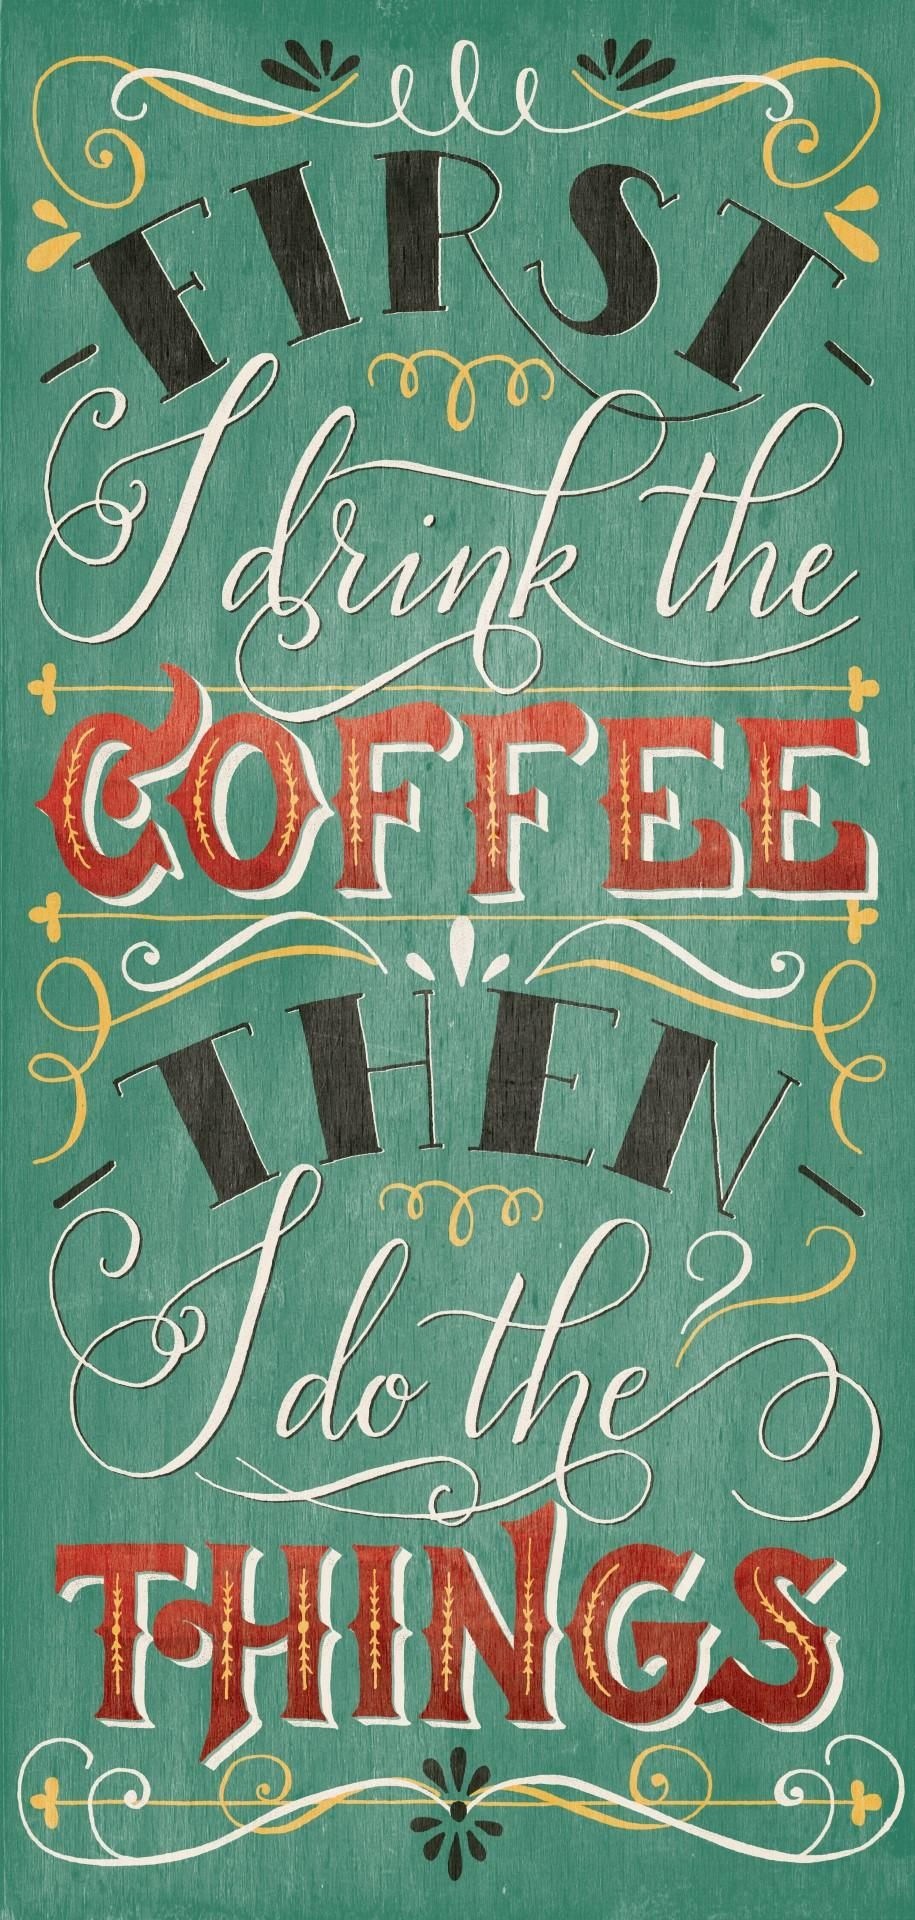 Vintage coffee quote - image 7 - student project